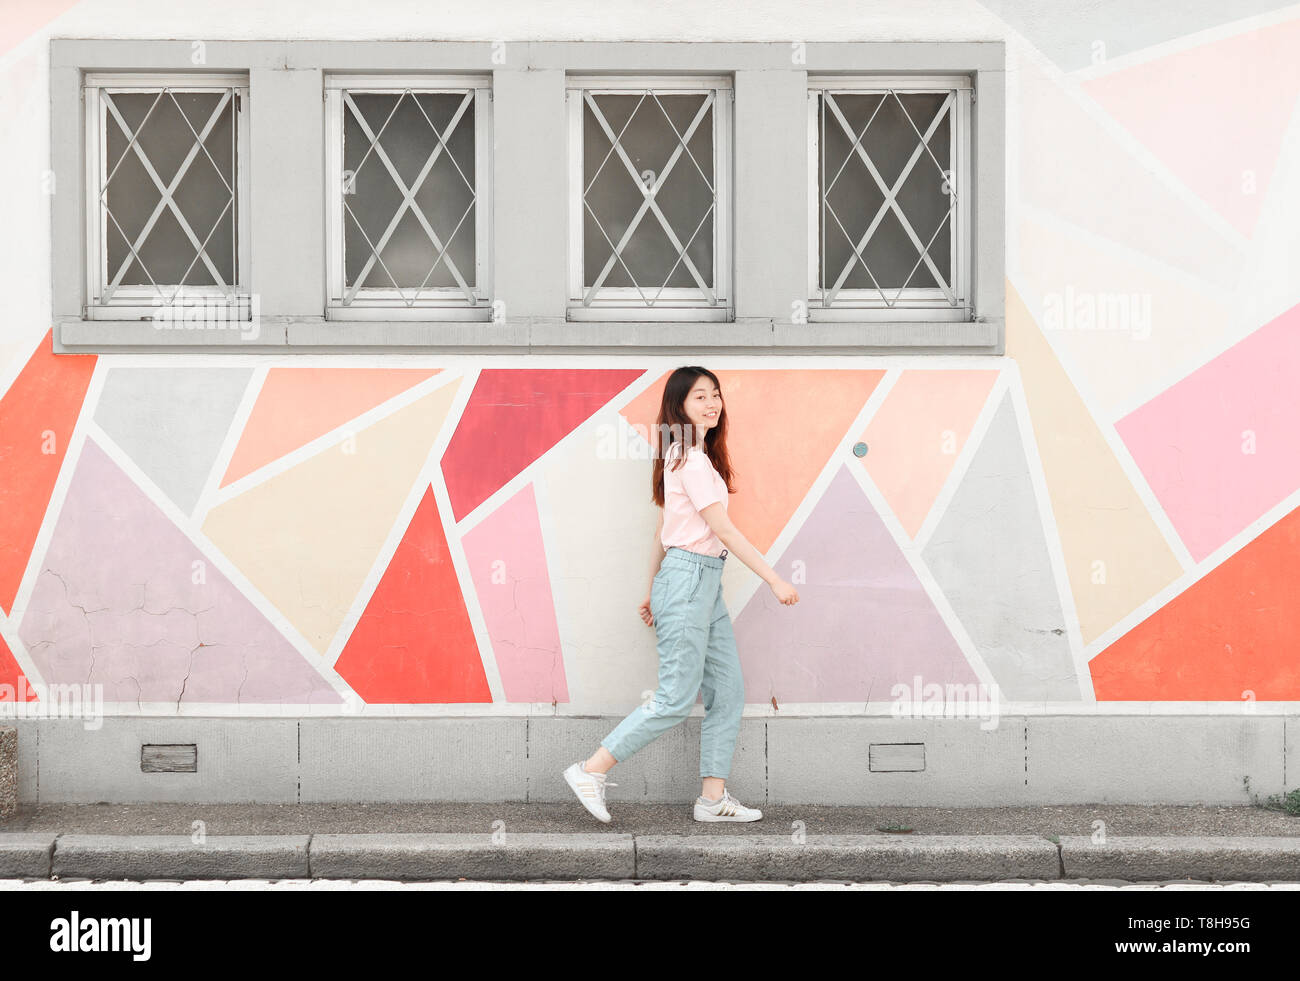 Geometric Wall Design Grey